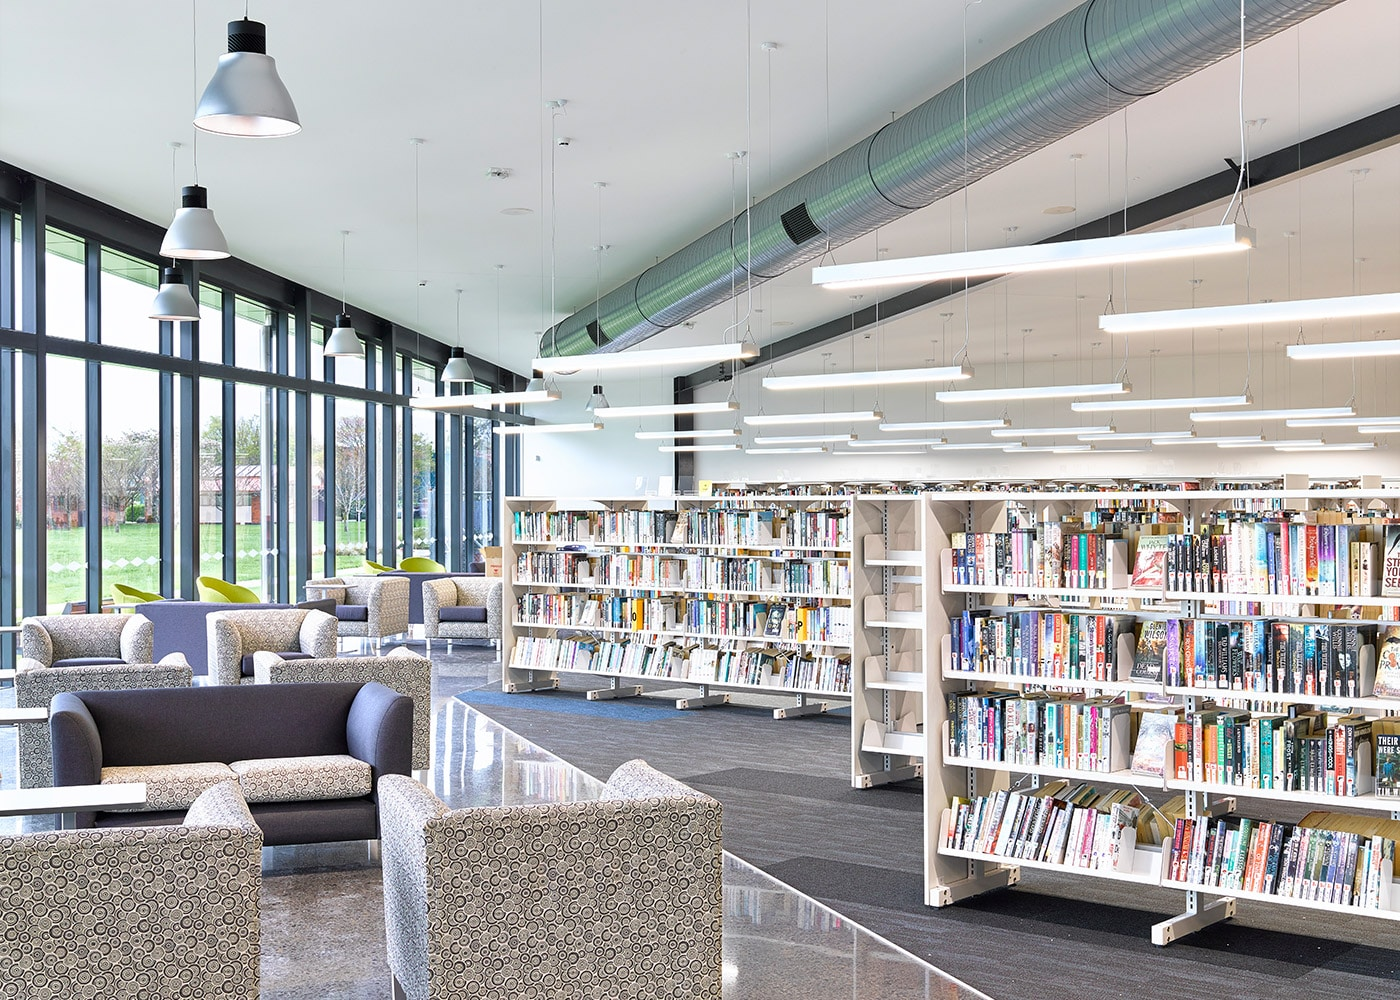 LED Lighting Systems at Te Awamutu Library